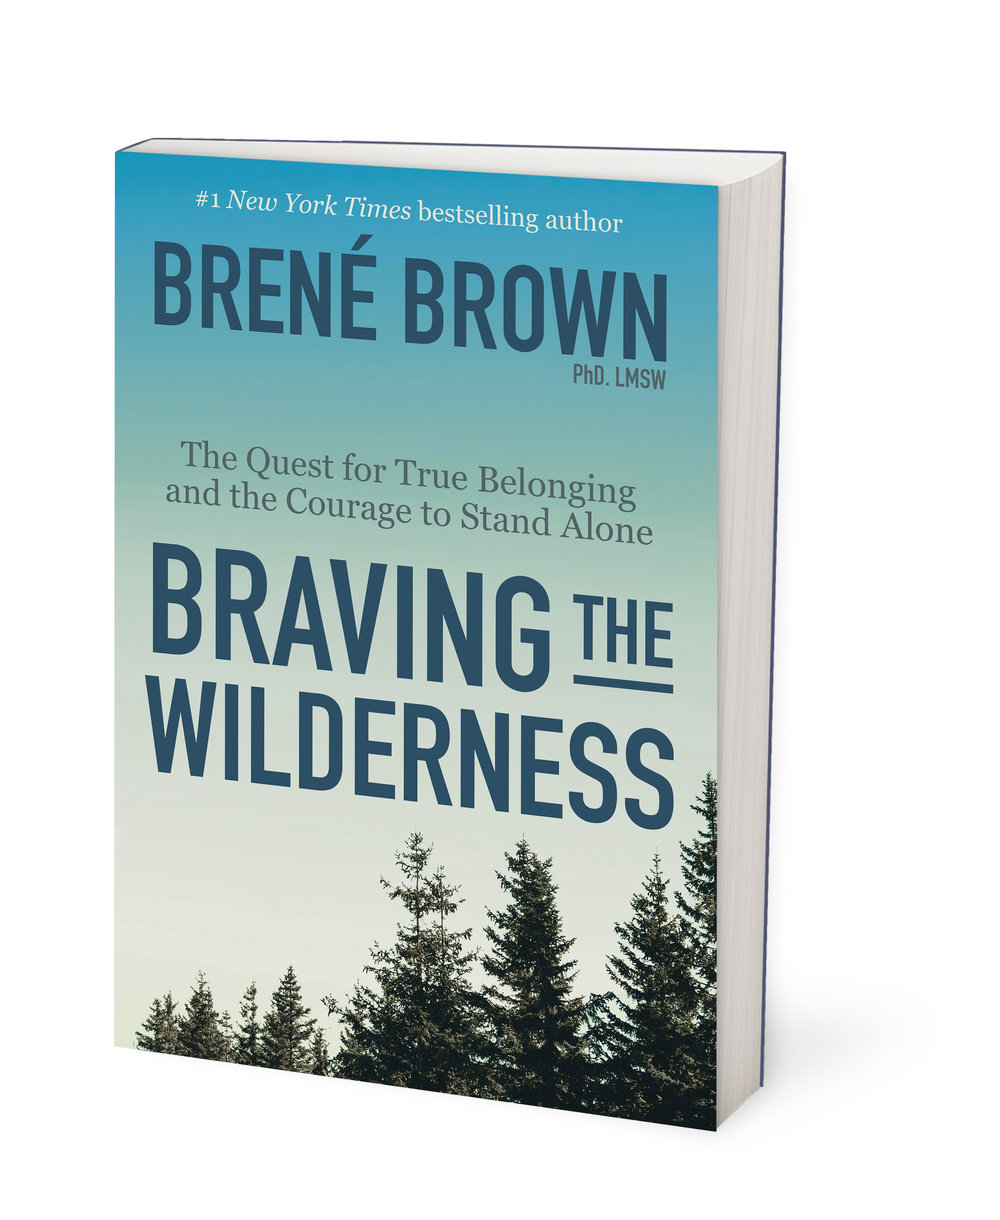 brene brown braving the wilderness book - Você é vulnerável o suficiente para se conectar?